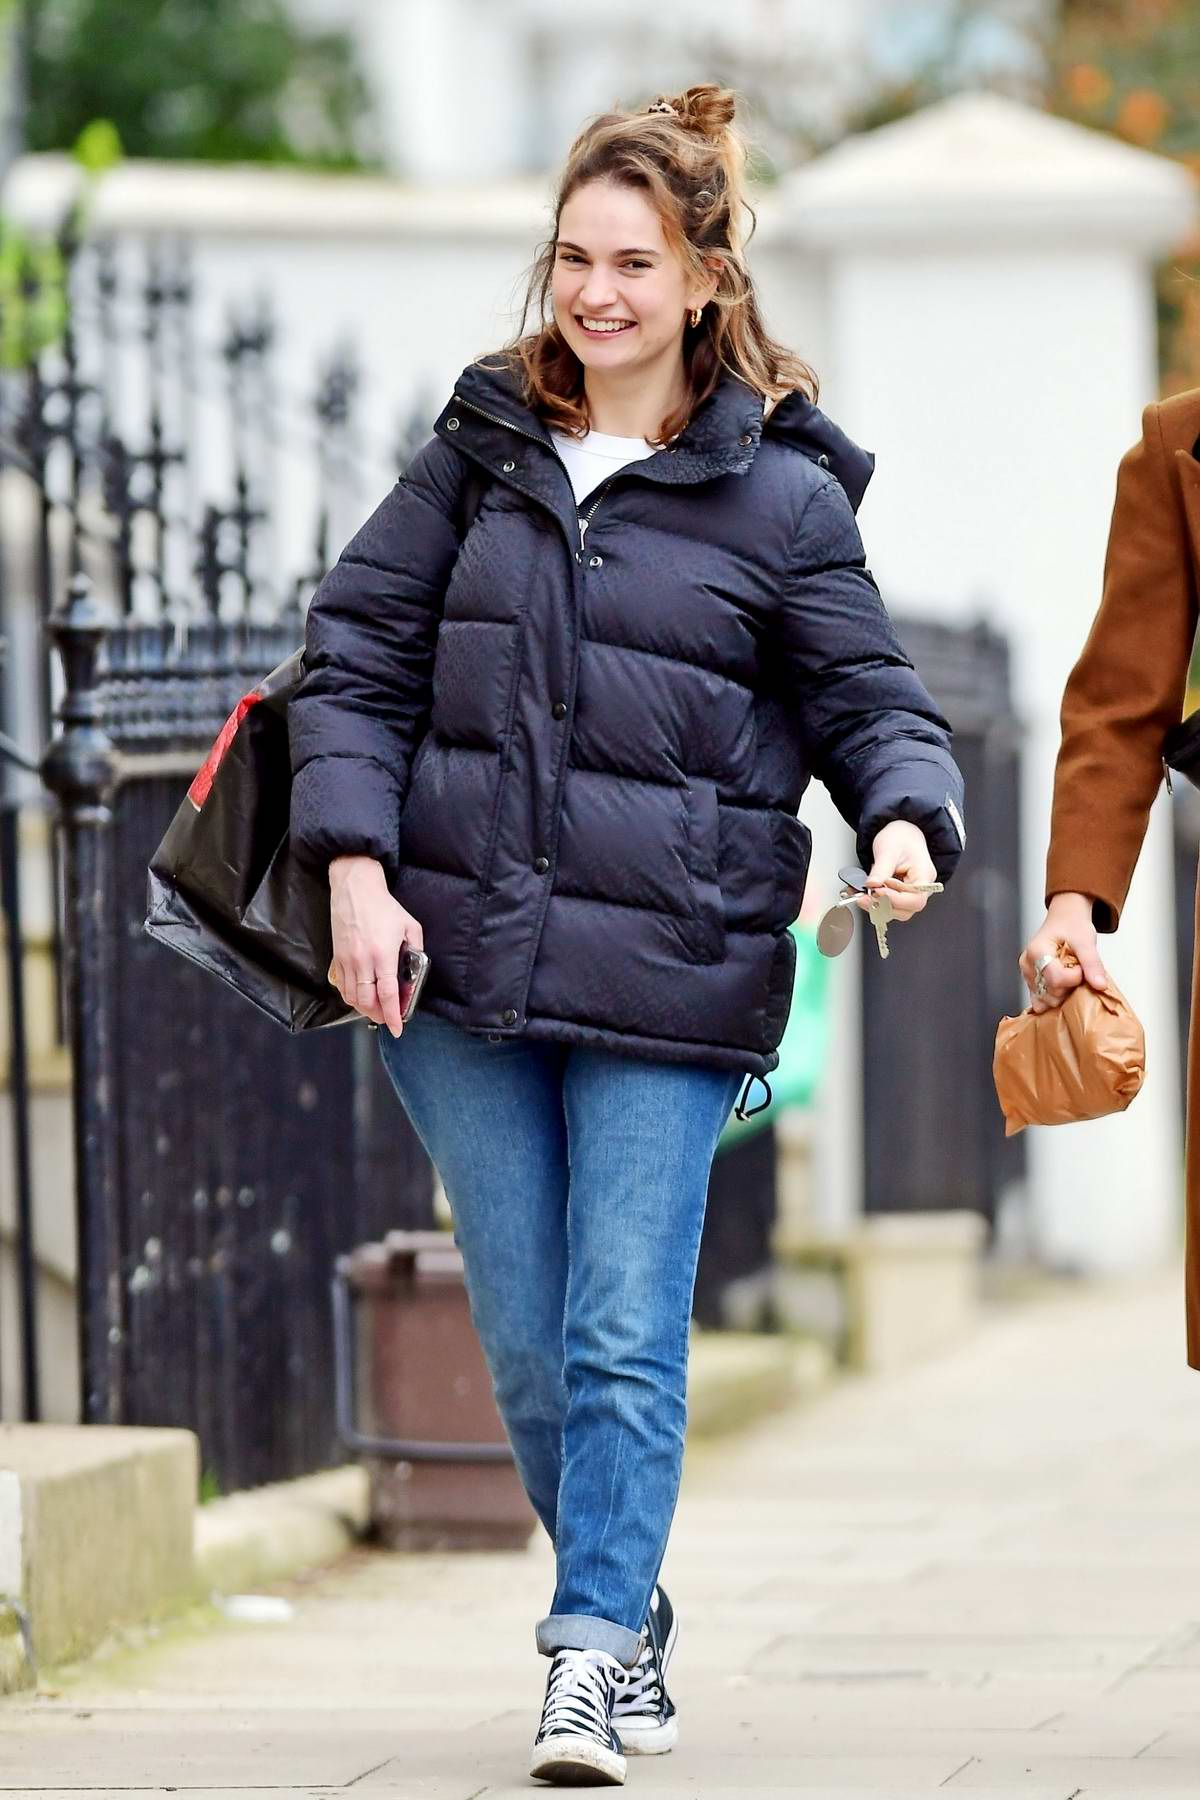 Lily James is all smiles while out for stroll with a friend in North London, UK